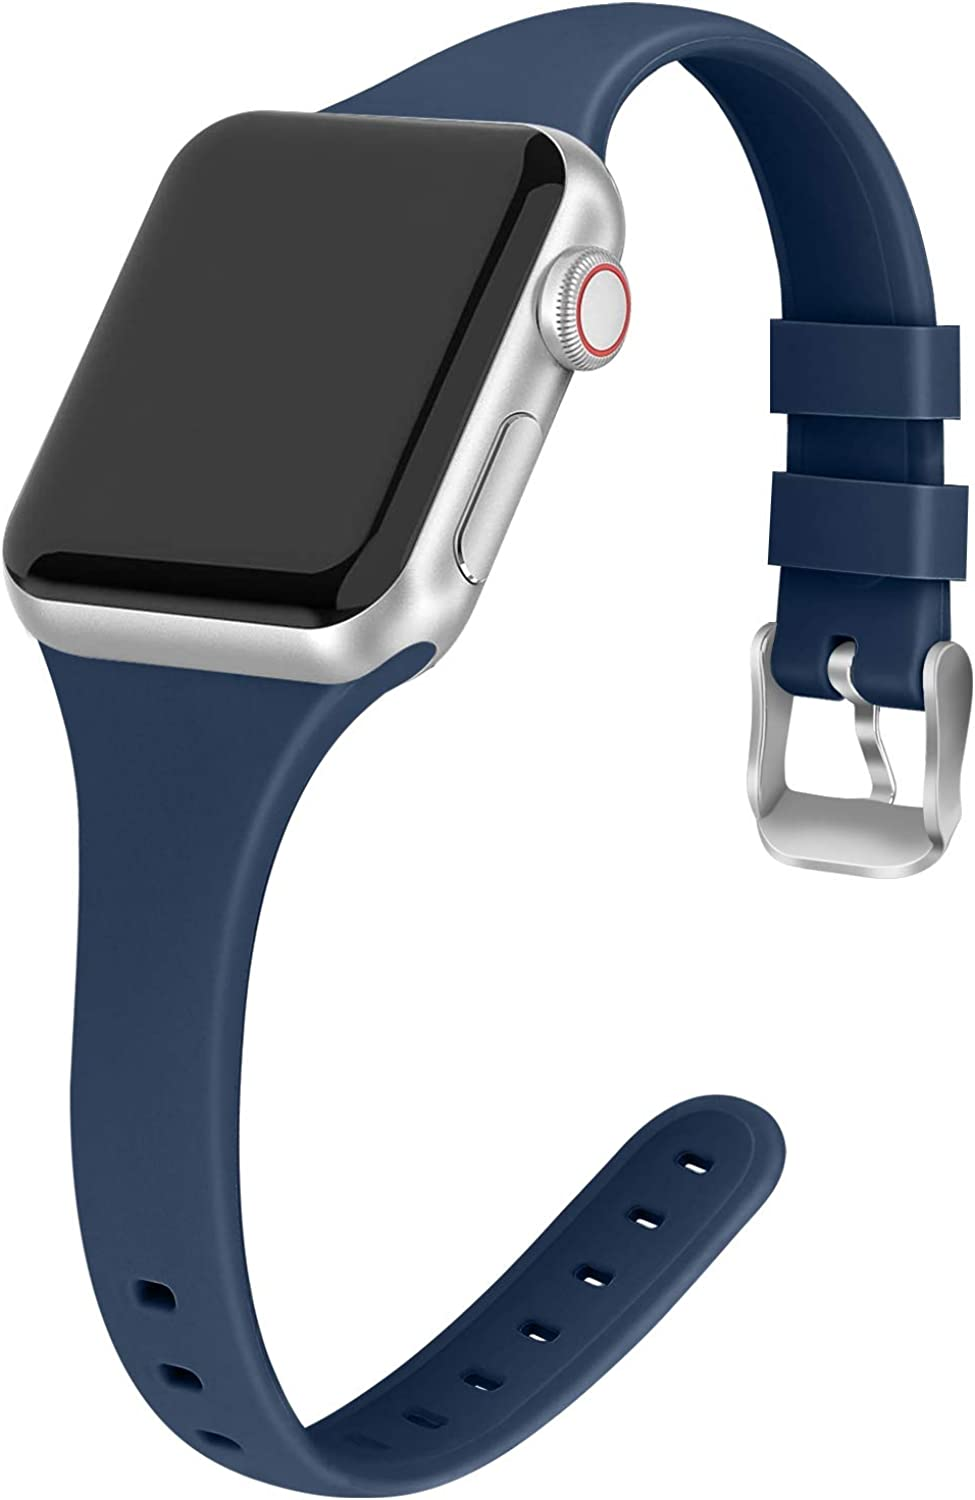 Vinyl Etchings Sport Band Compatible with Apple Watch Bands 38mm 40mm 42mm 44mm Slim Thin Skinny Narrow Soft Silicone Replacement Strap Wristband for iWatch SE Series 6/5/4/3/2/1 Women&Men